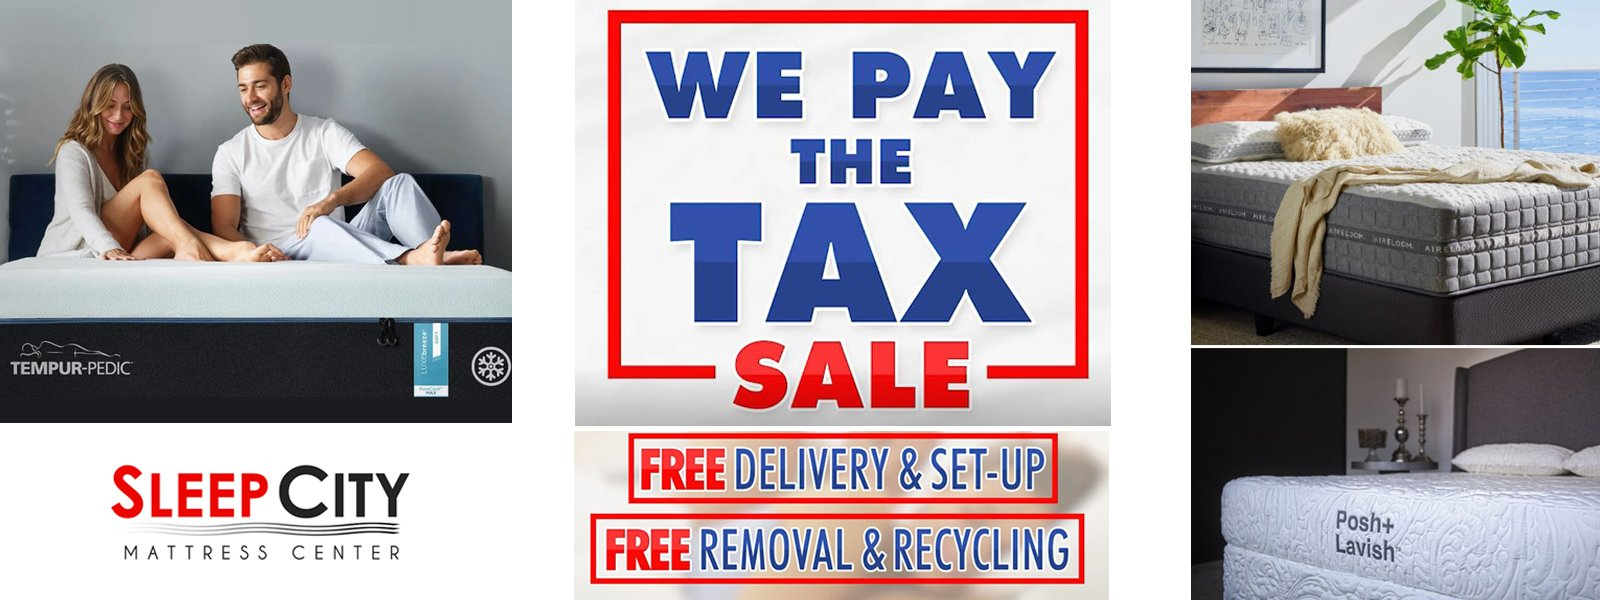 We Pay the Tax_web slider